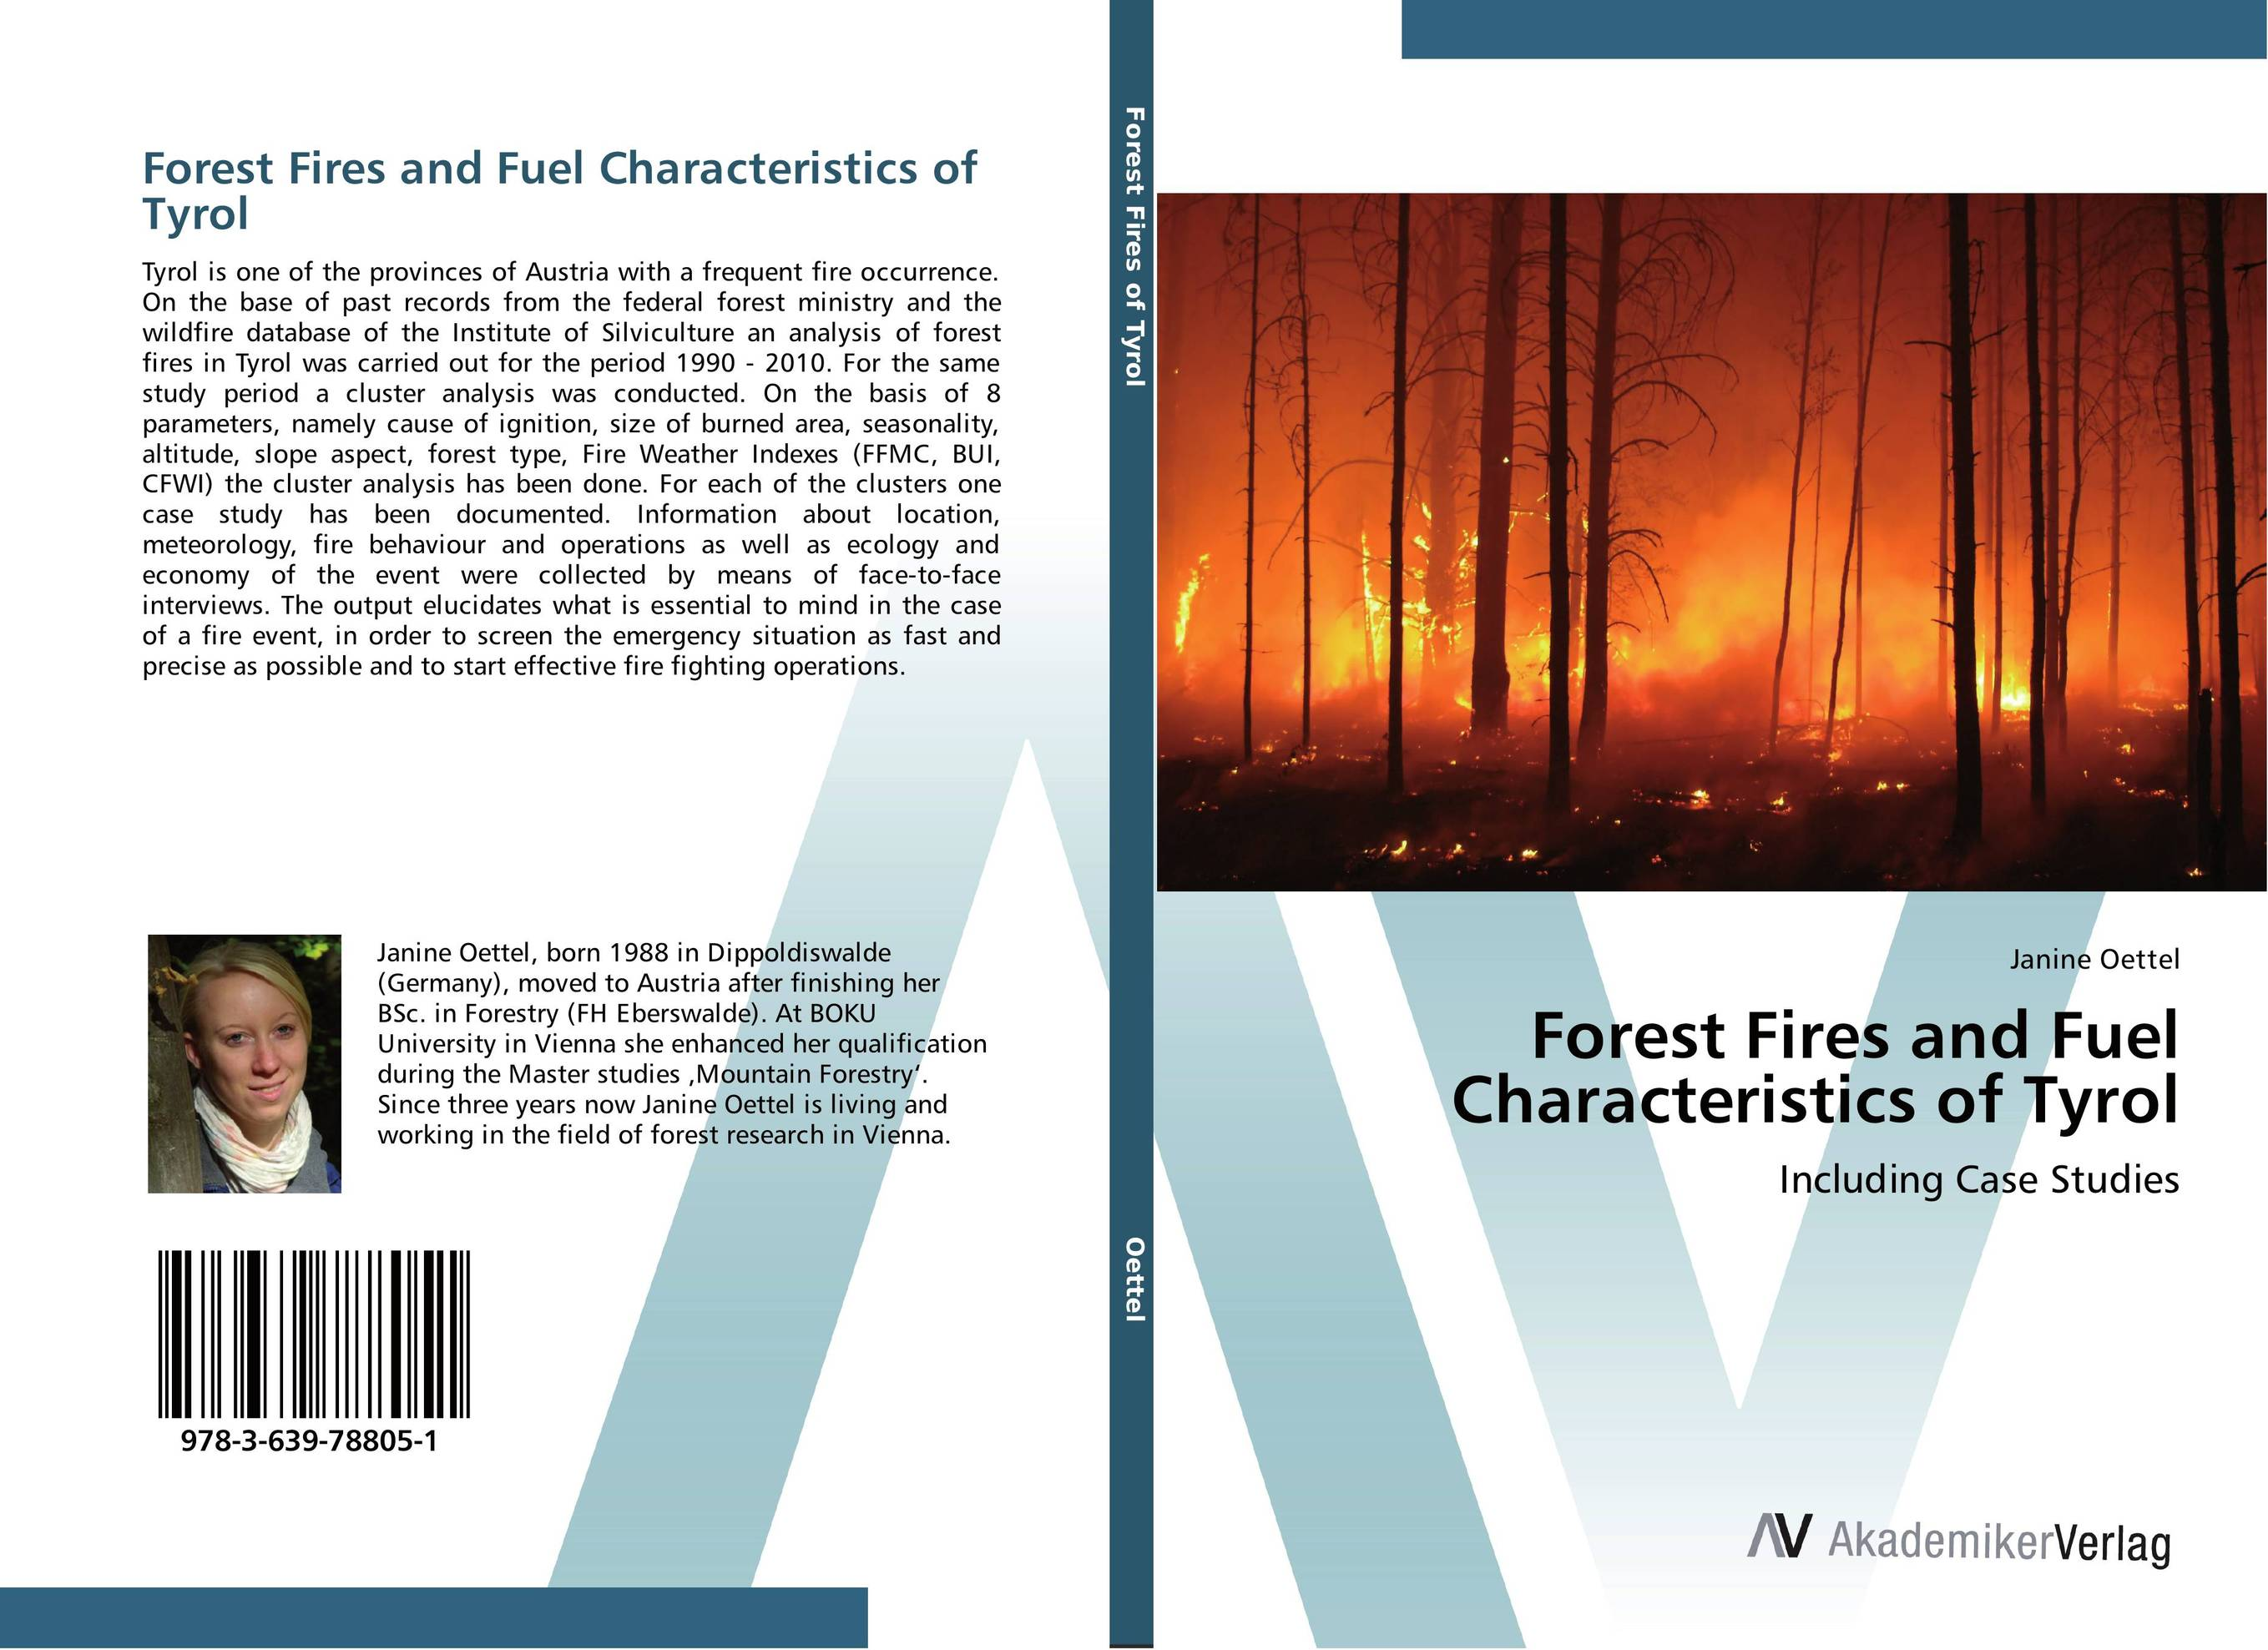 Forest Fires and Fuel Characteristics of Tyrol